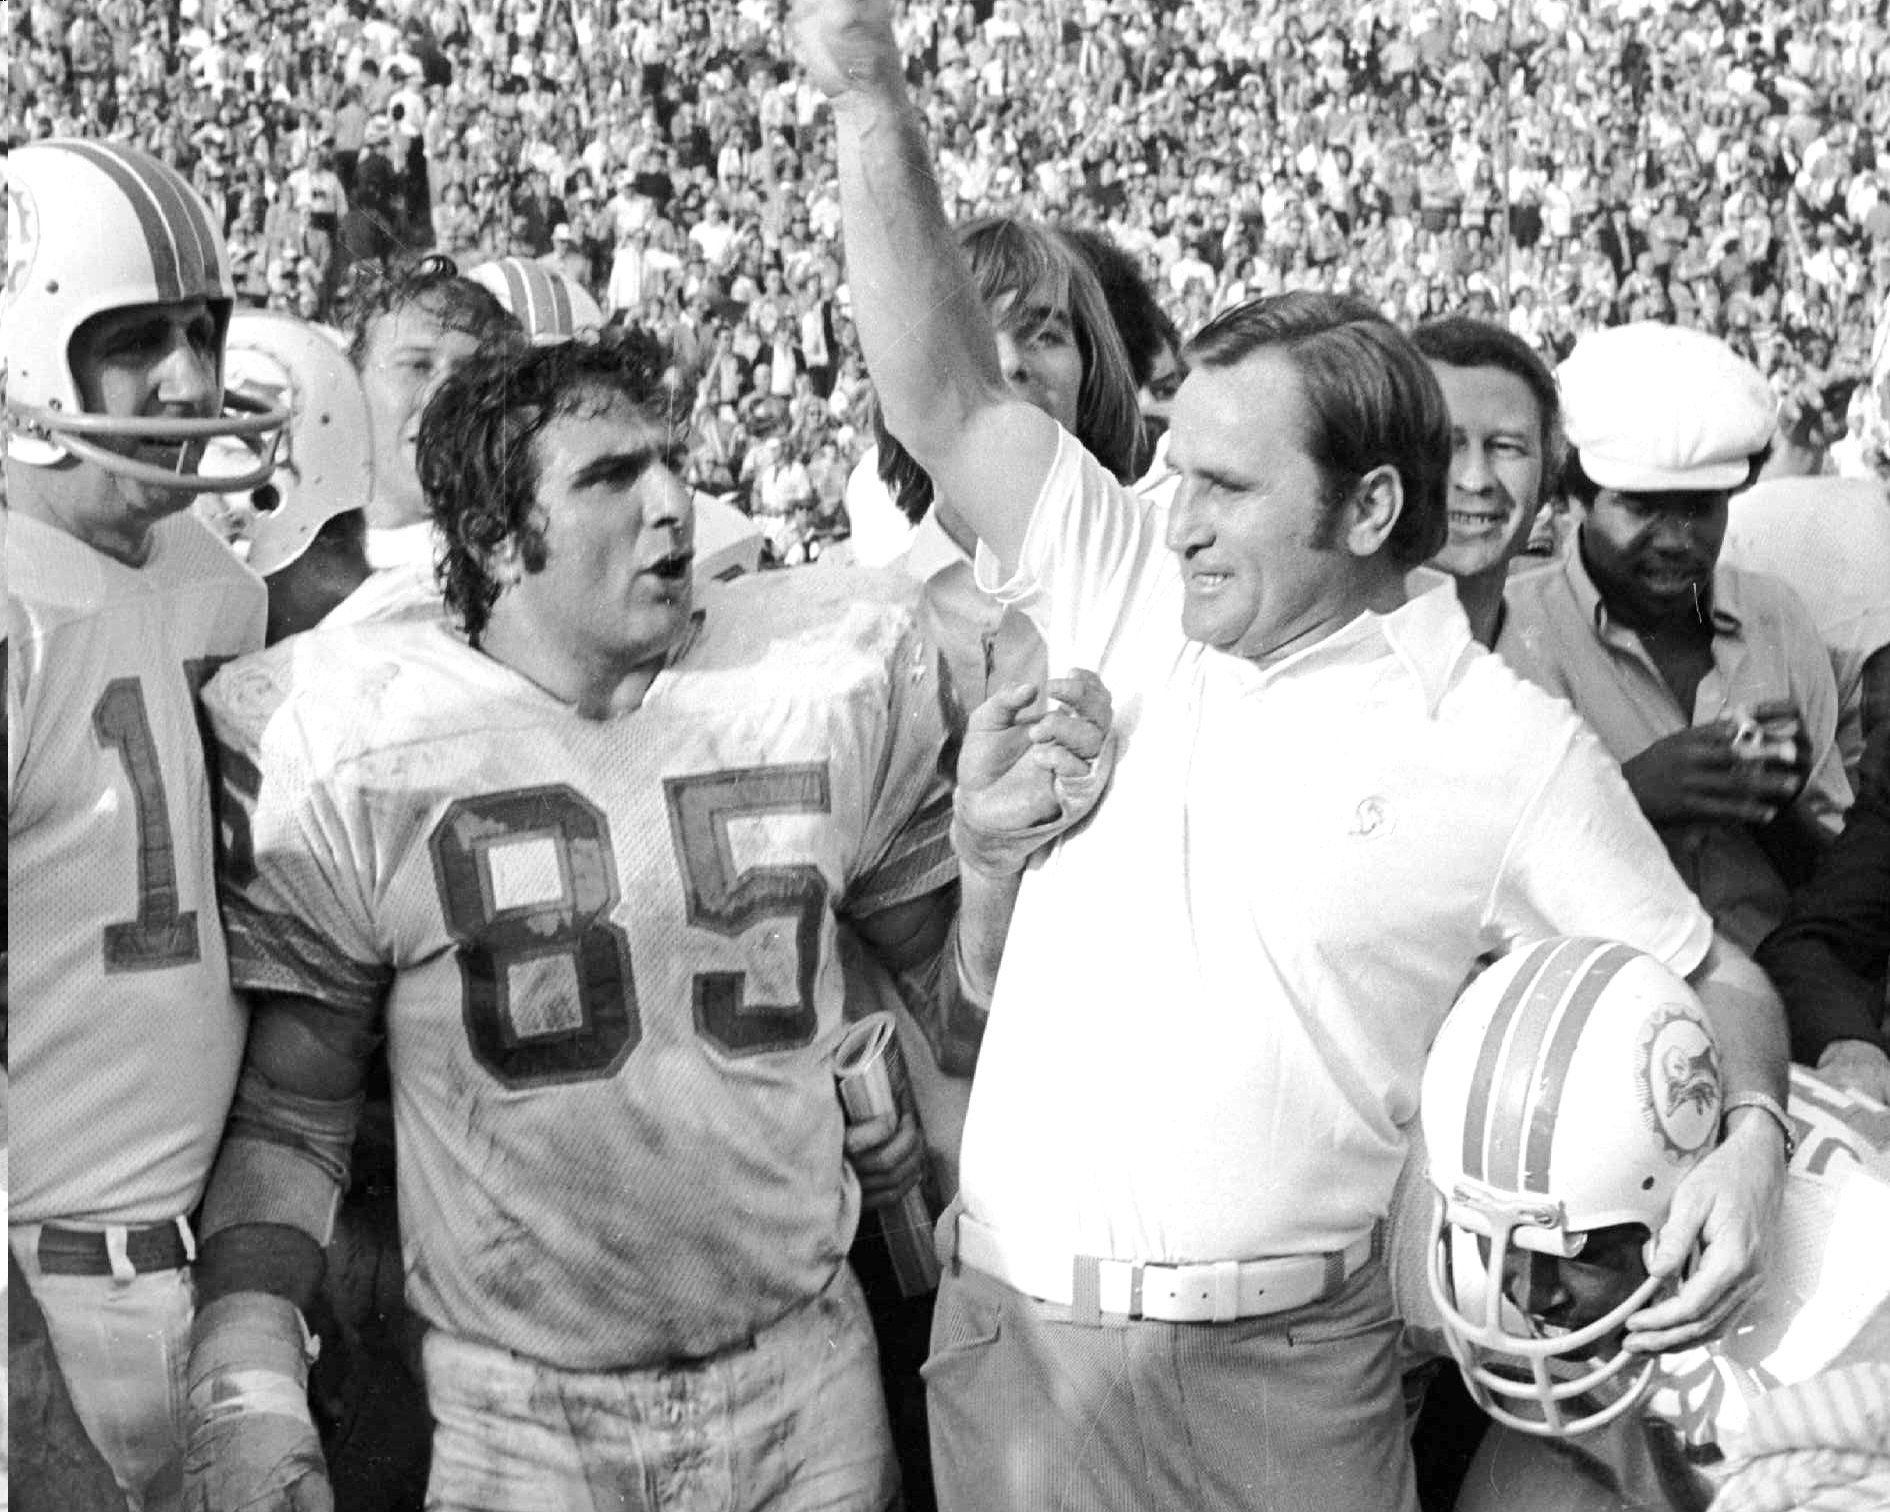 Nick Buoniconti, 78, Dies; All-Pro Linebacker Championed pertaining to When Did Miami Dolphins Win The Super Bowl